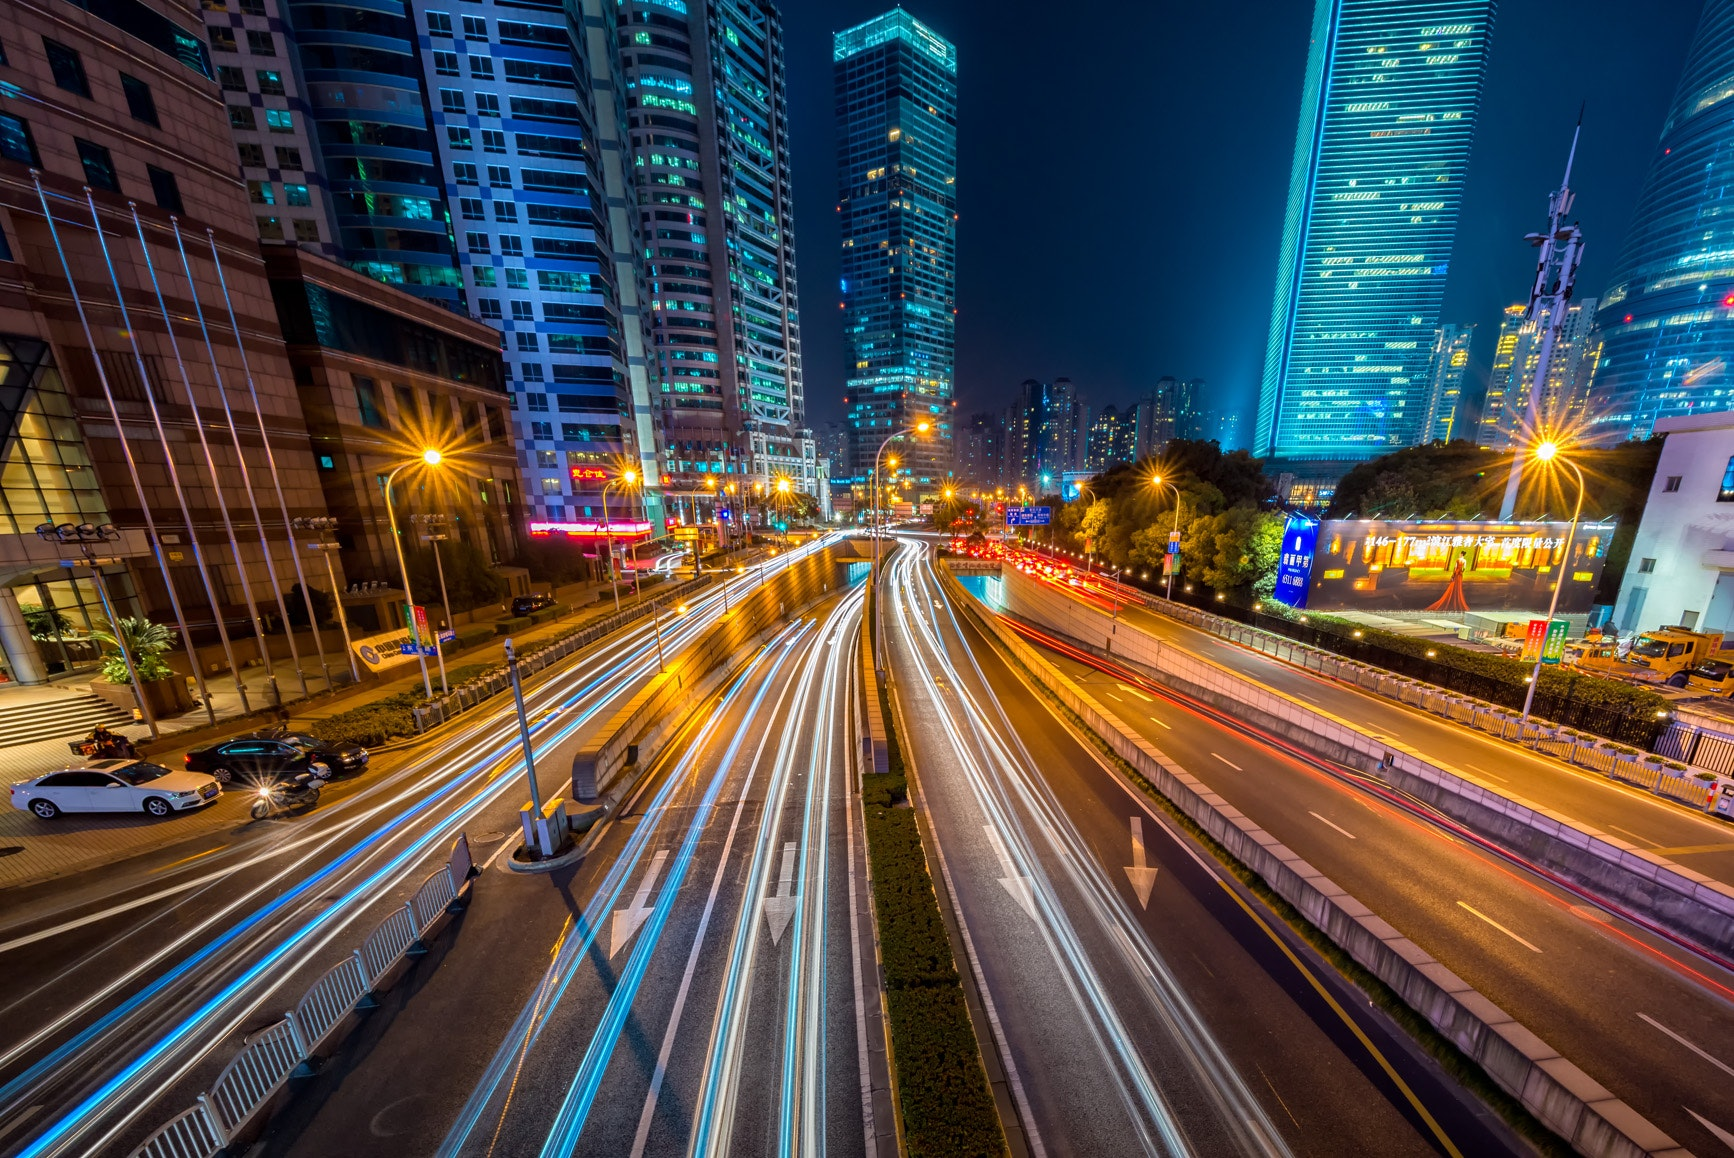 Cityscape at night time with blurred lights of cars driving by